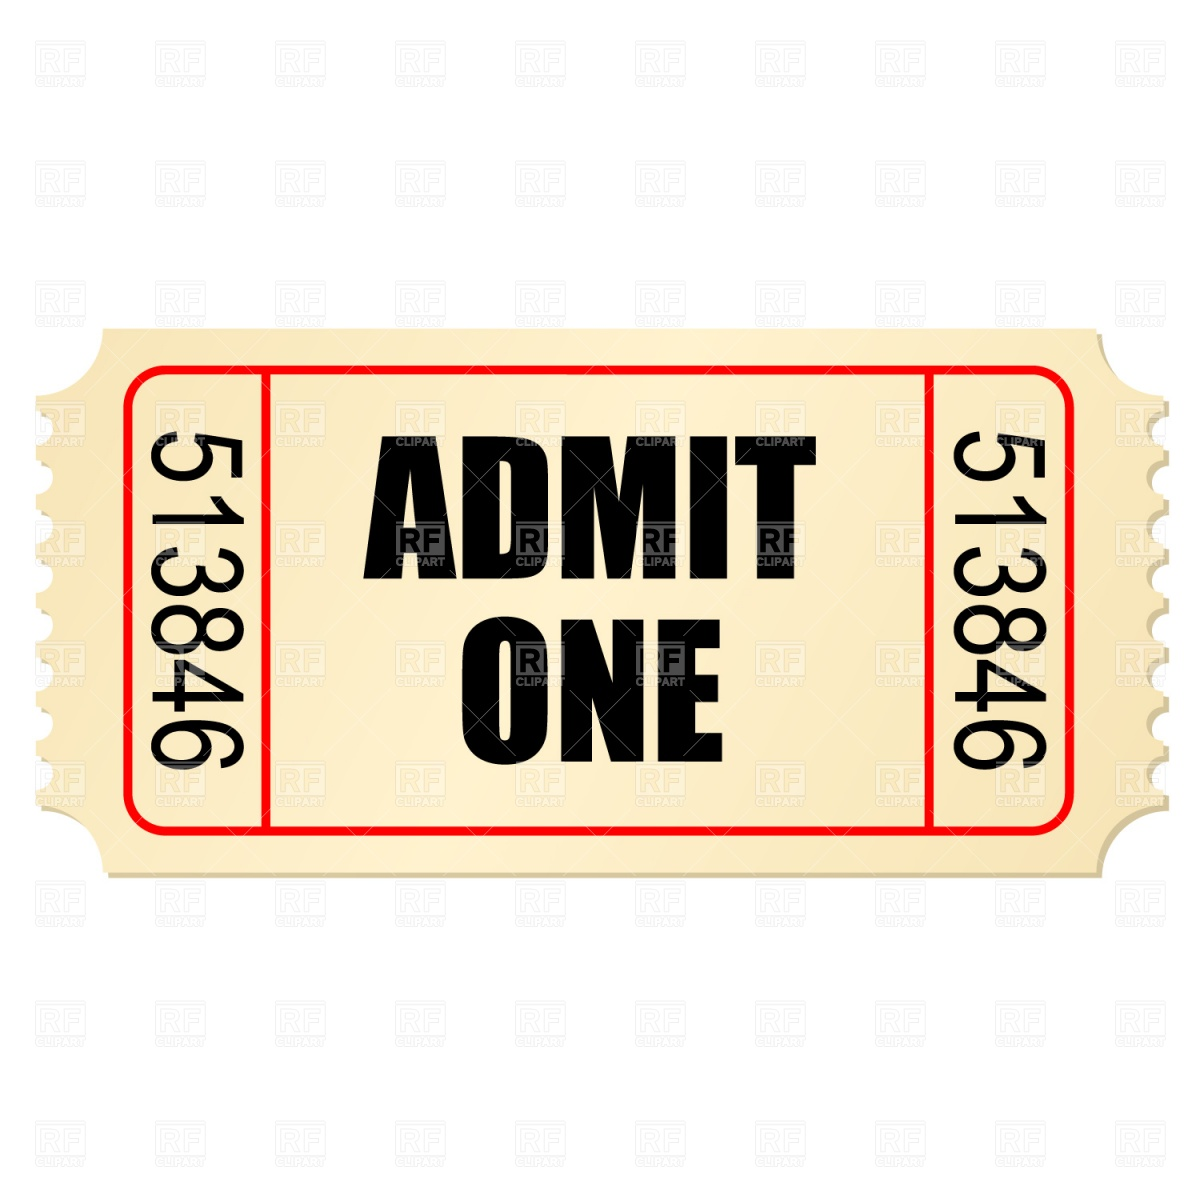 17 Ticket Stub Vector Free Images